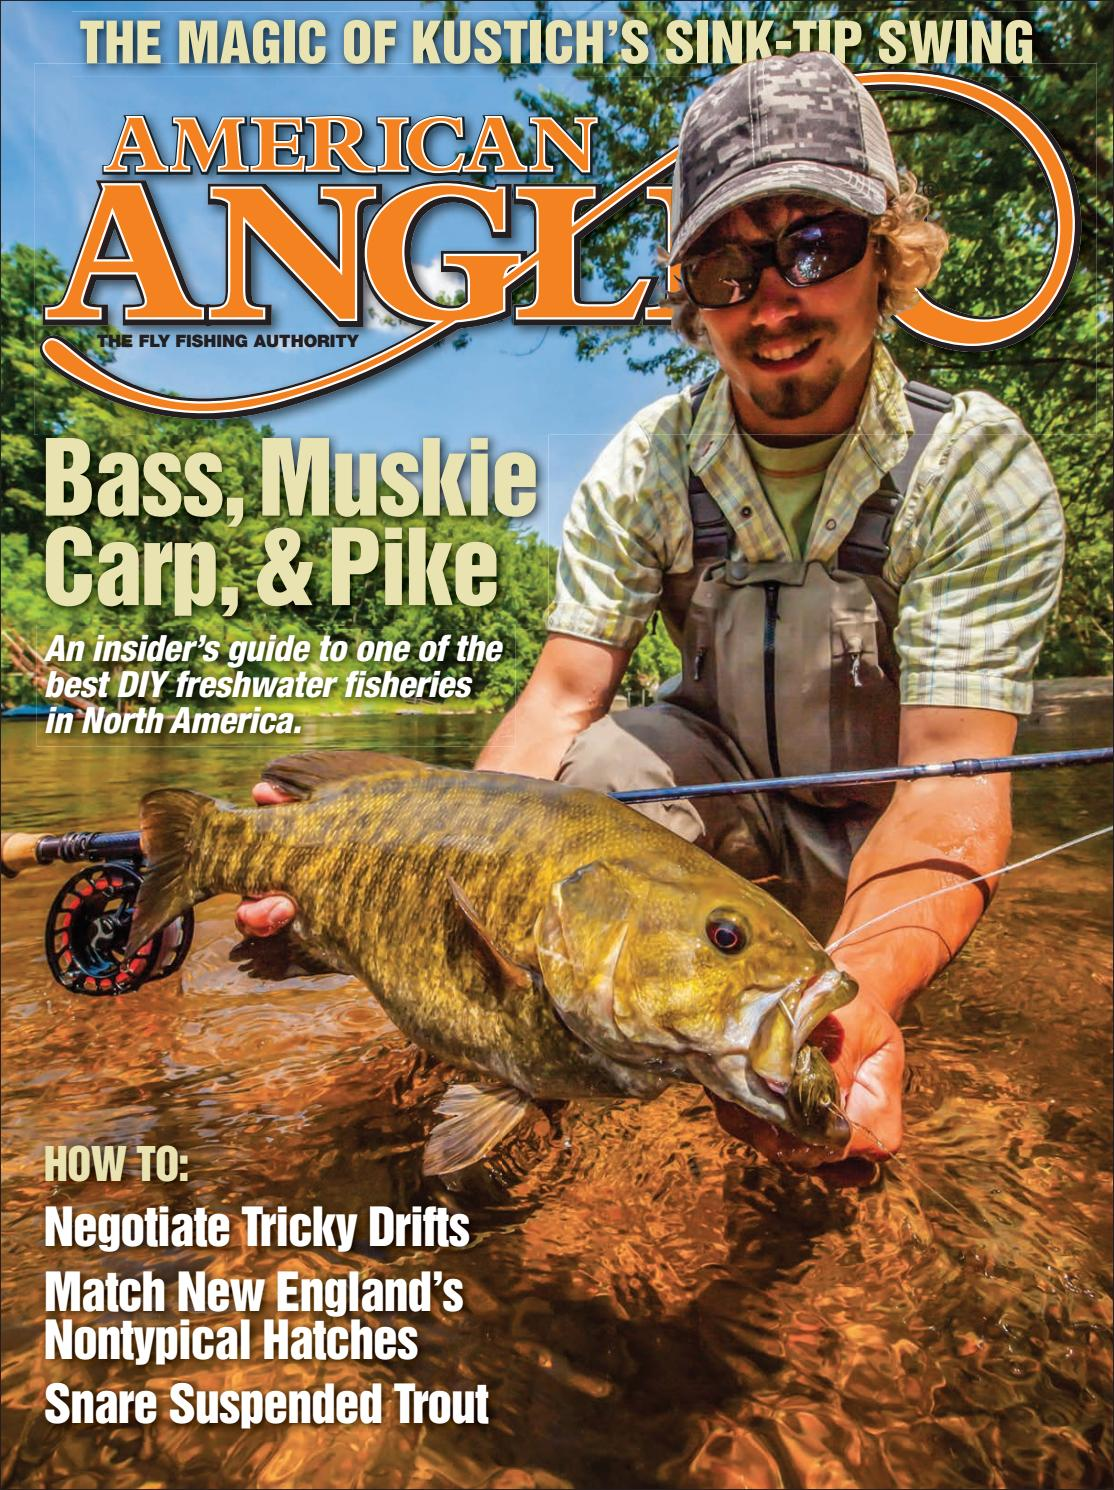 cb4ea1717bd4e American Angler May June 2018 by Cowboy Publishing Group - issuu